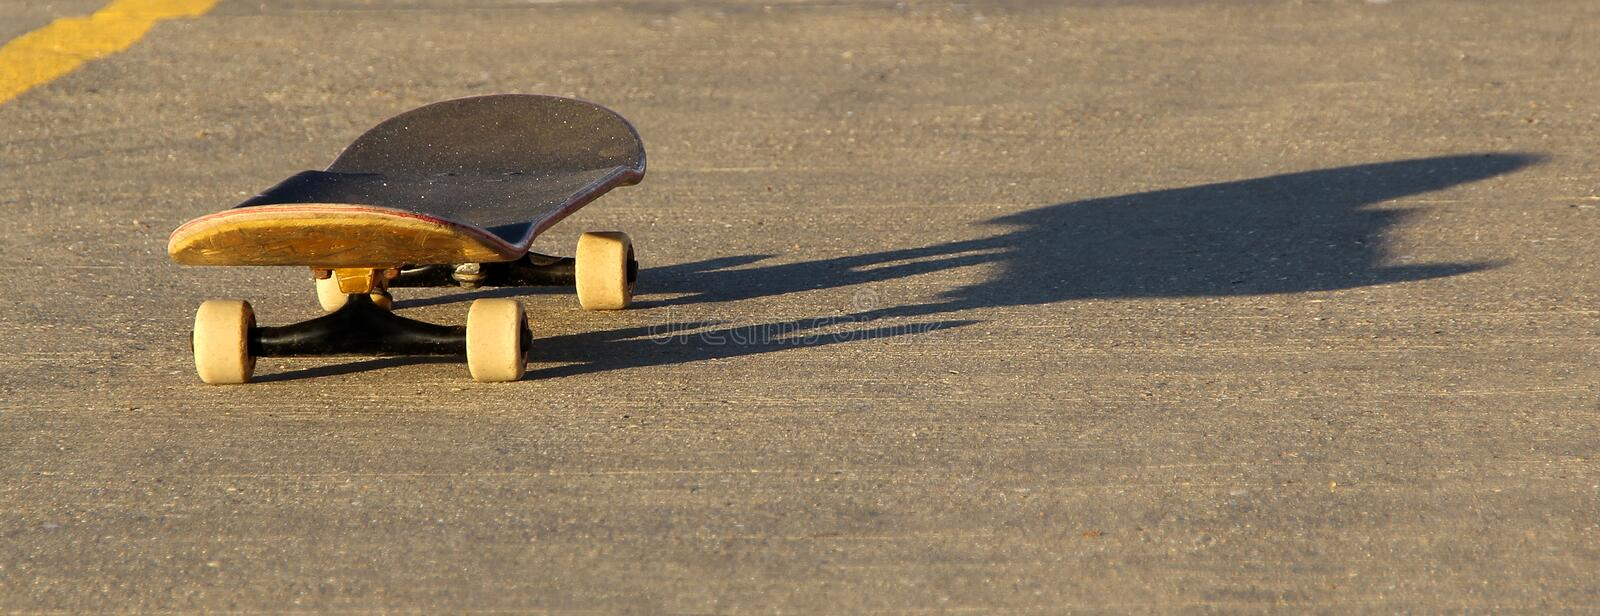 Skateboard and shadow. Photo of a skateboard and shadow on tarmac ideal for text etc royalty free stock images